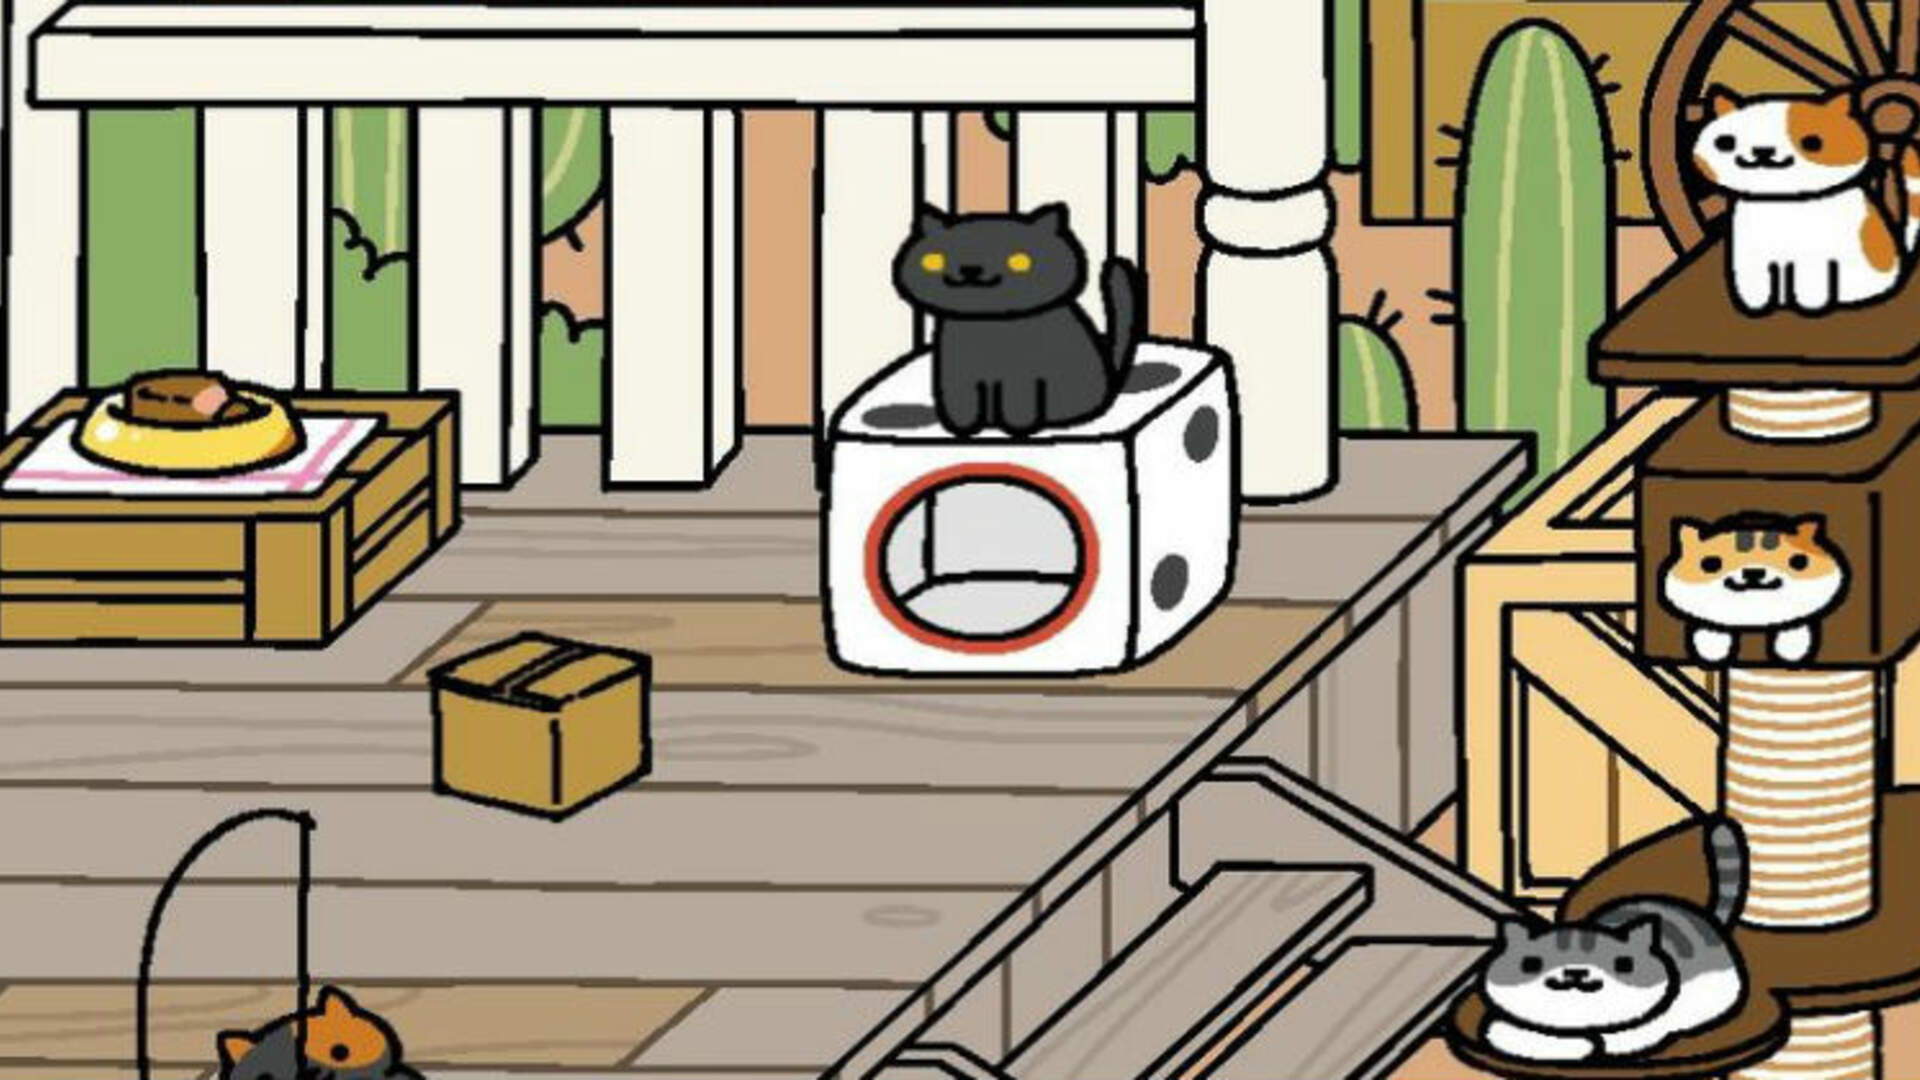 Neko Atsume: Kitty Collector Gets Update, is Temporarily Pulled From the App Store [UPDATE: iOS Version Fixed!]